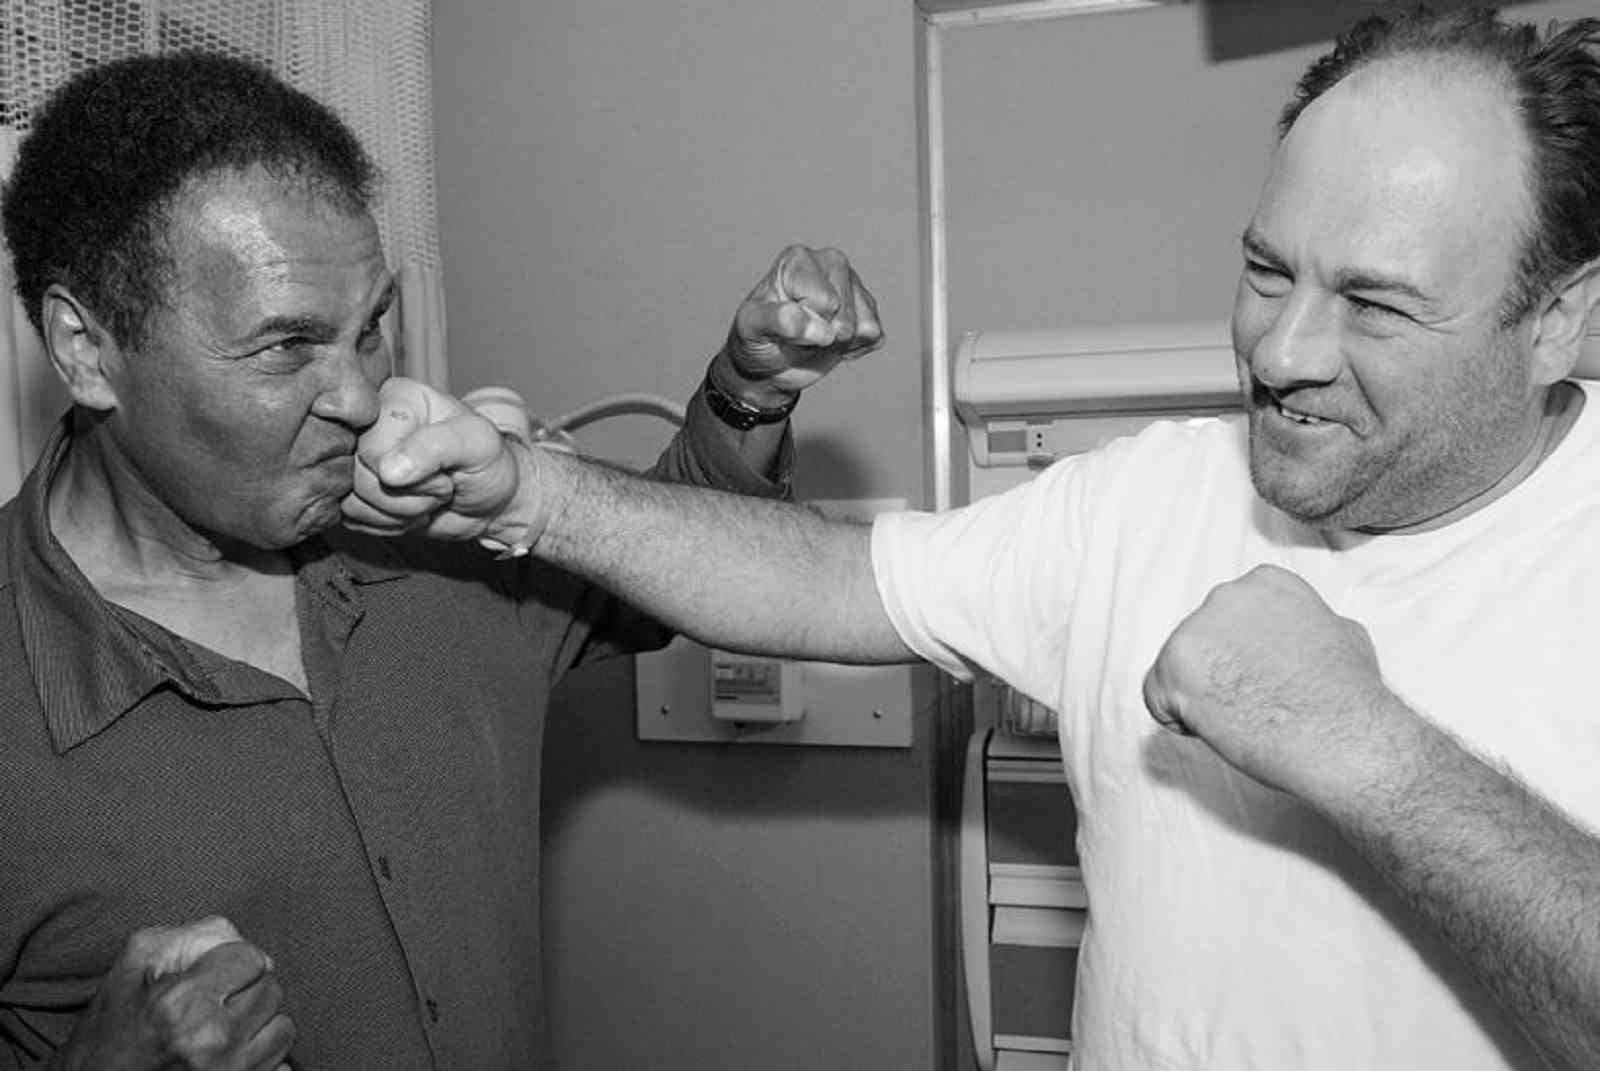 When Two Giants Met, One From Boxing The Other From TV